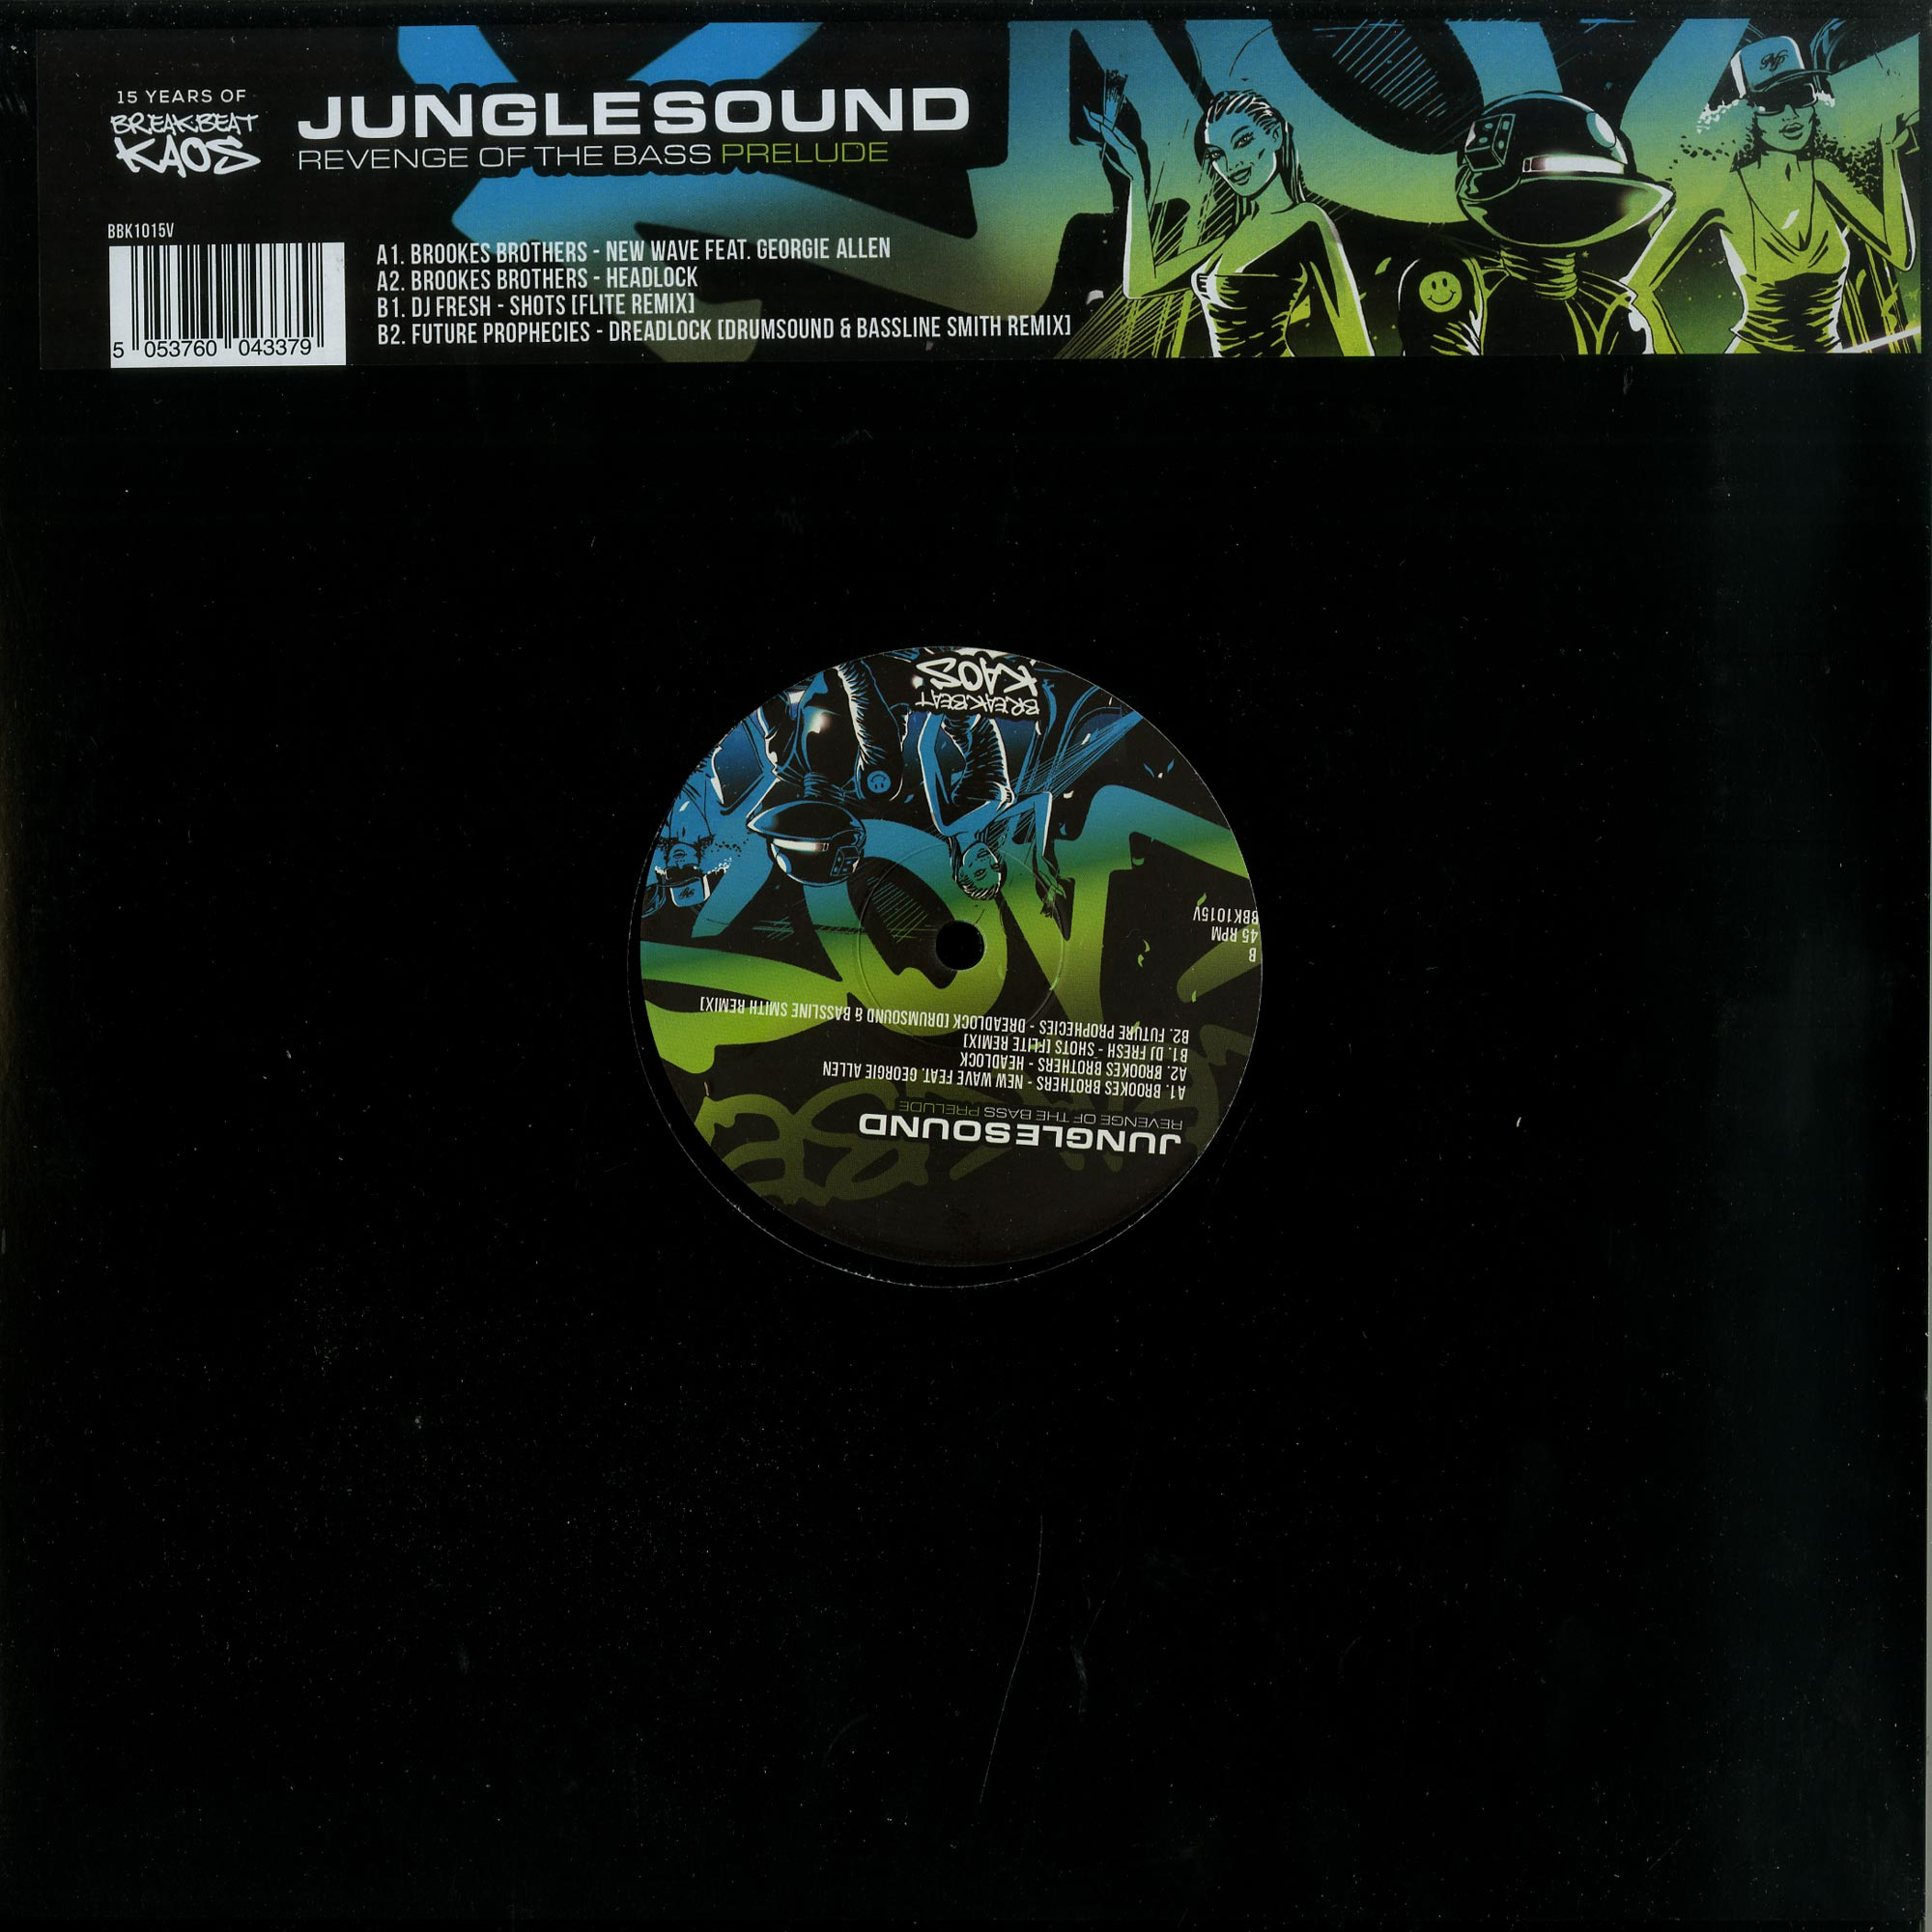 Various Artists - JUNGLESOUND: THE REVENGE OF THE BASS